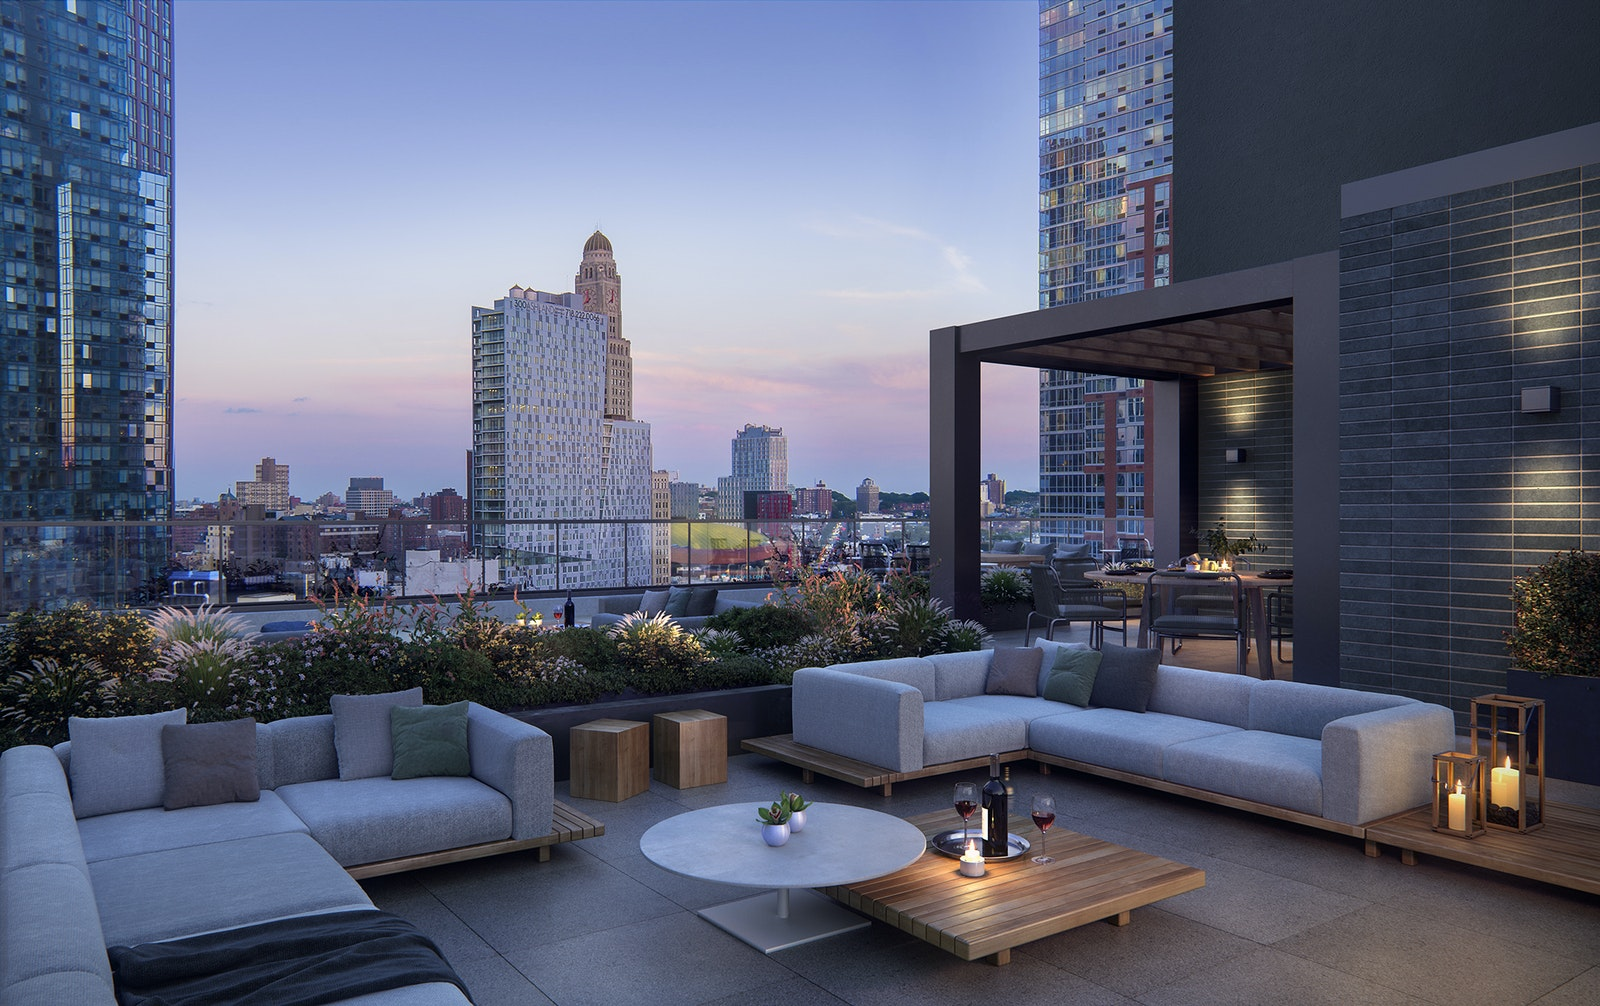 Apartment for sale at 10 Nevins Street, Apt 7G